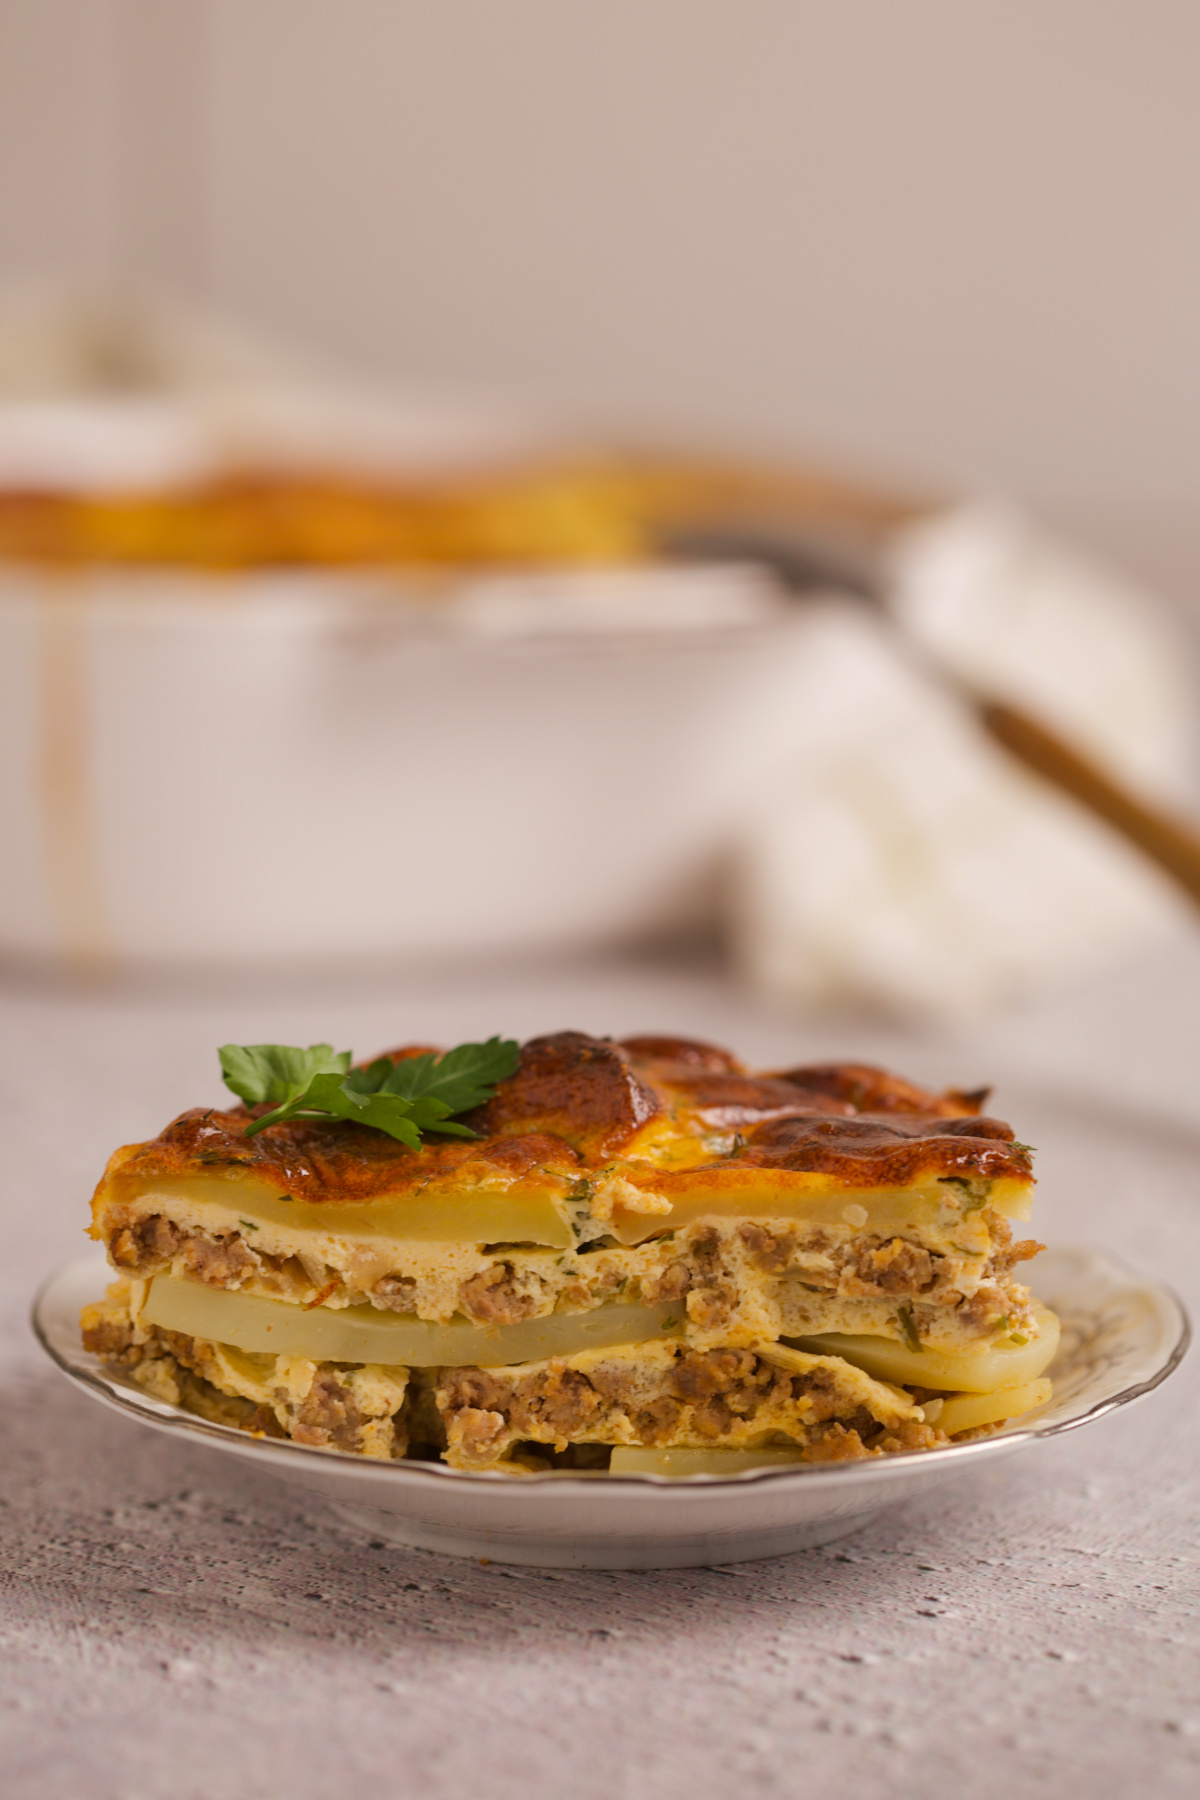 Moussaka on a plate.